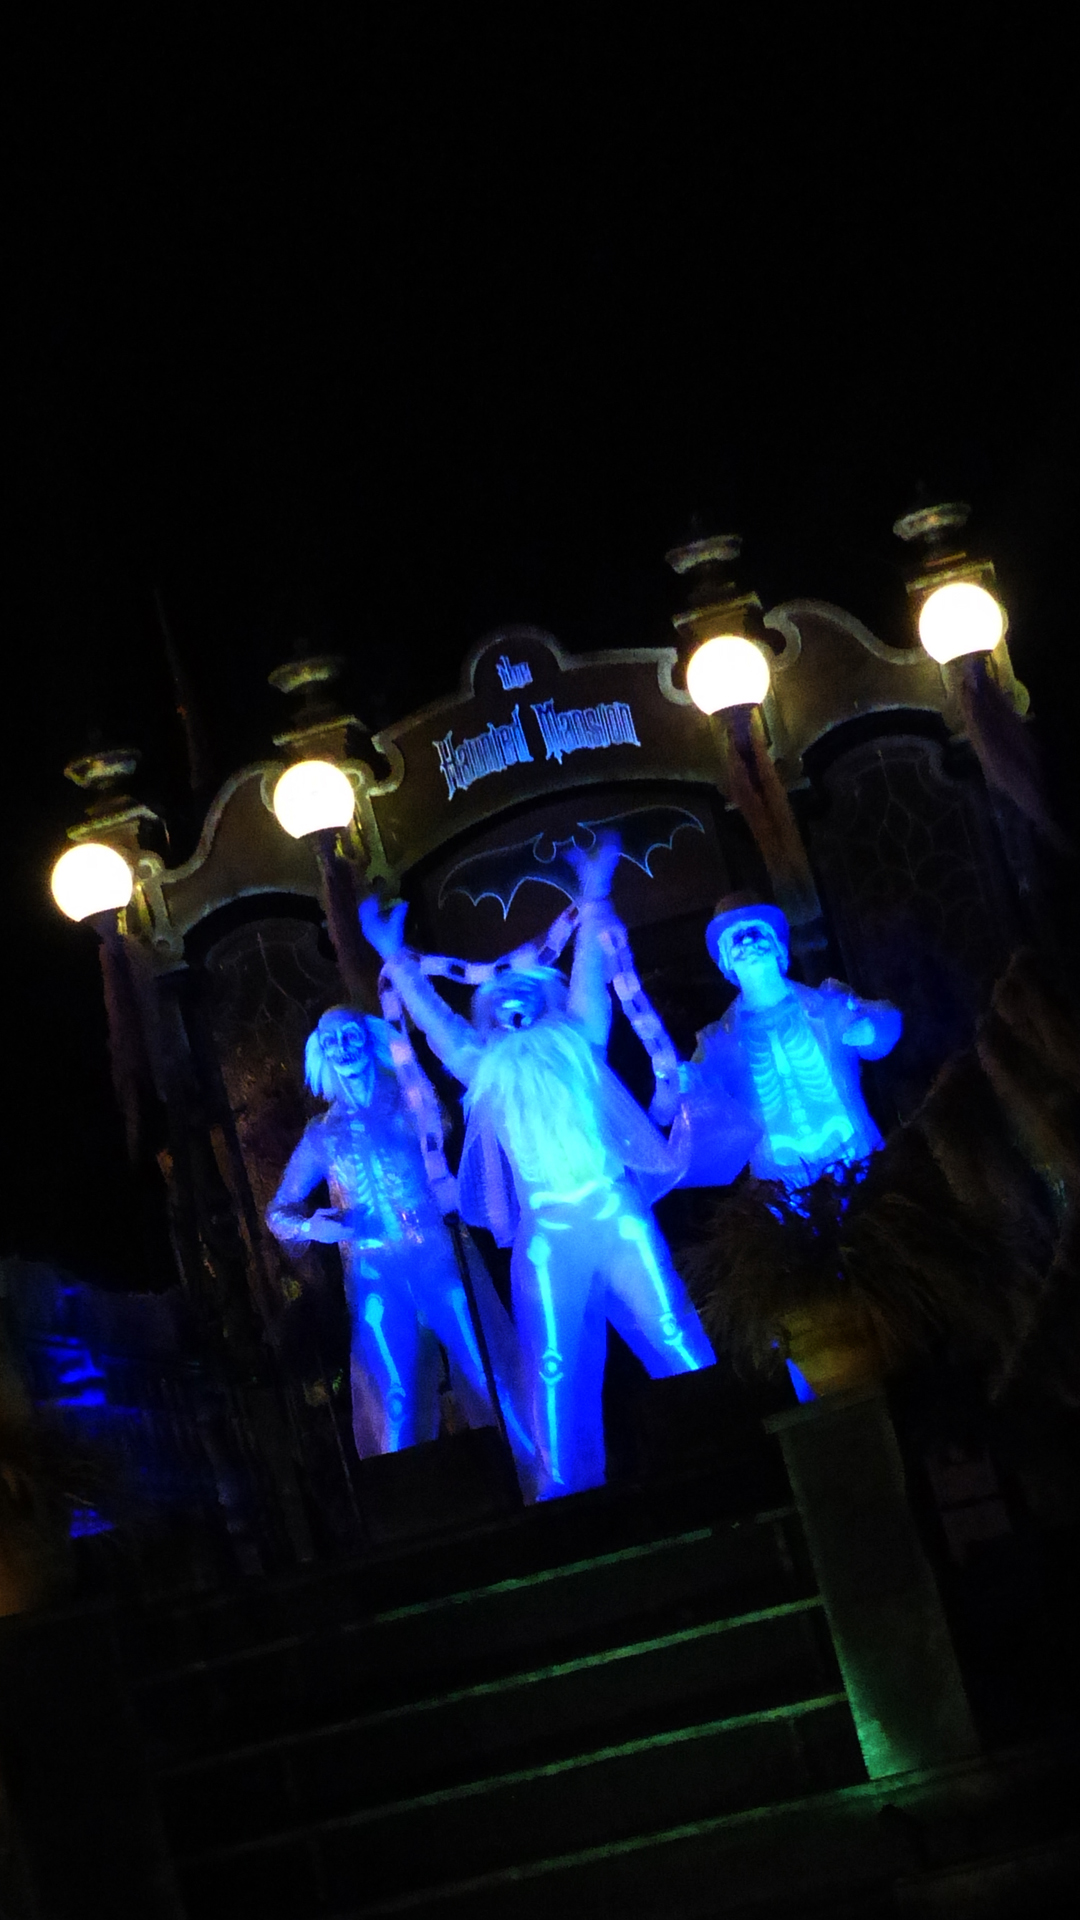 Amazing Wallpaper Halloween Light - Mickeys-Not-So-Scary-Halloween-Party-Disney-iPhone-Wallpaper-2-2  Perfect Image Reference_96792.jpg